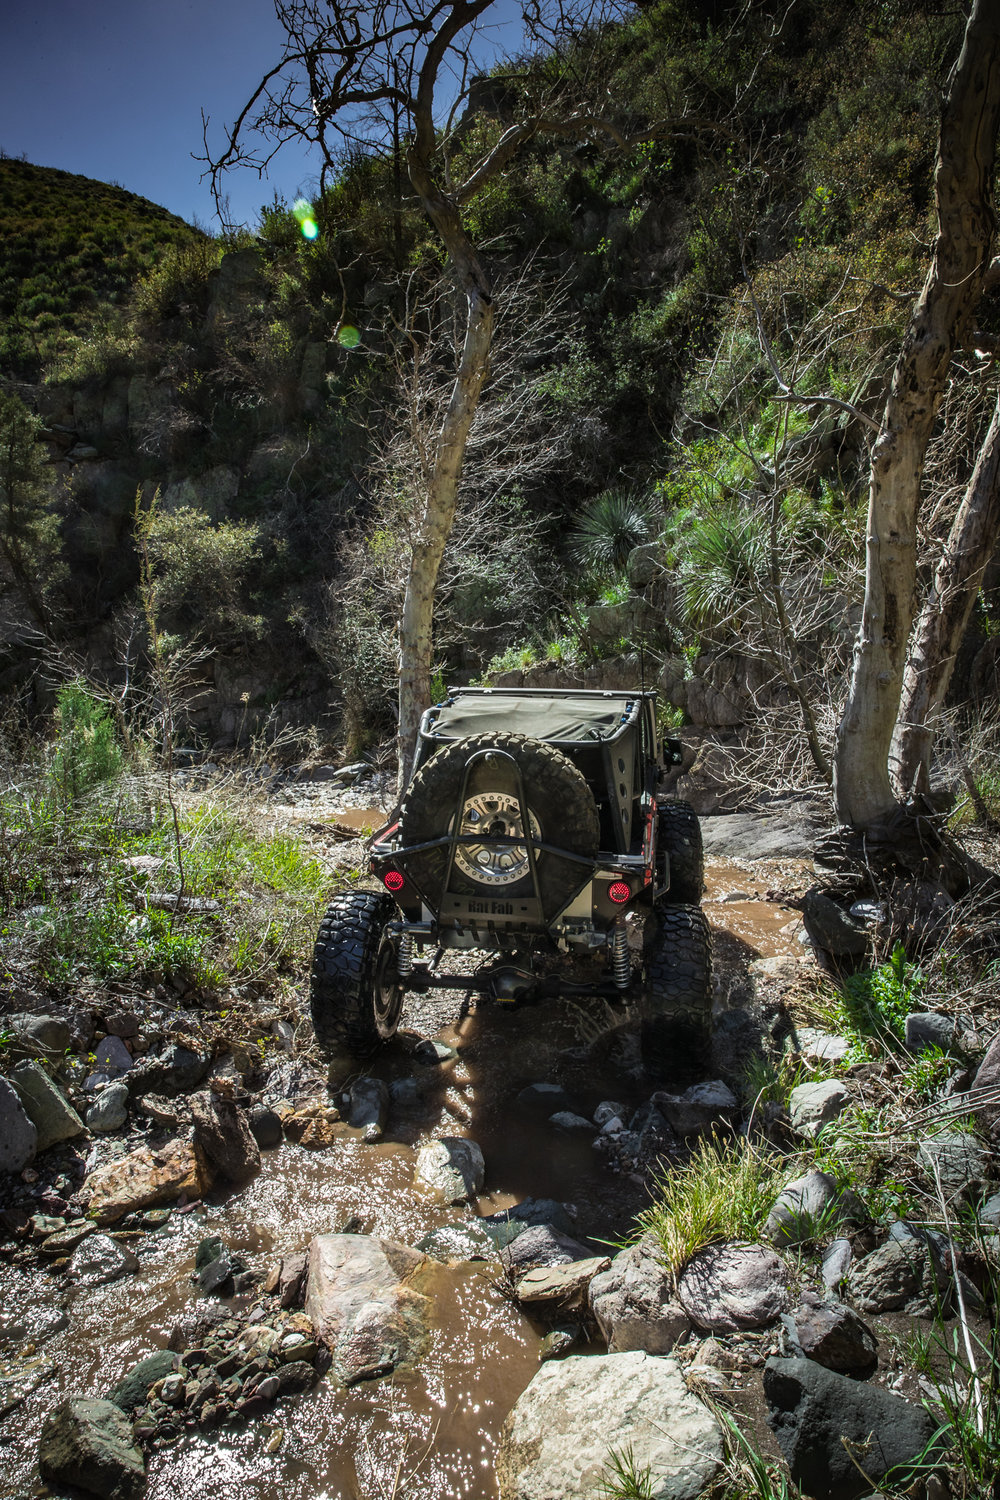 Jeeps Sycamore Creek 3_25_17 WEB-2.jpg